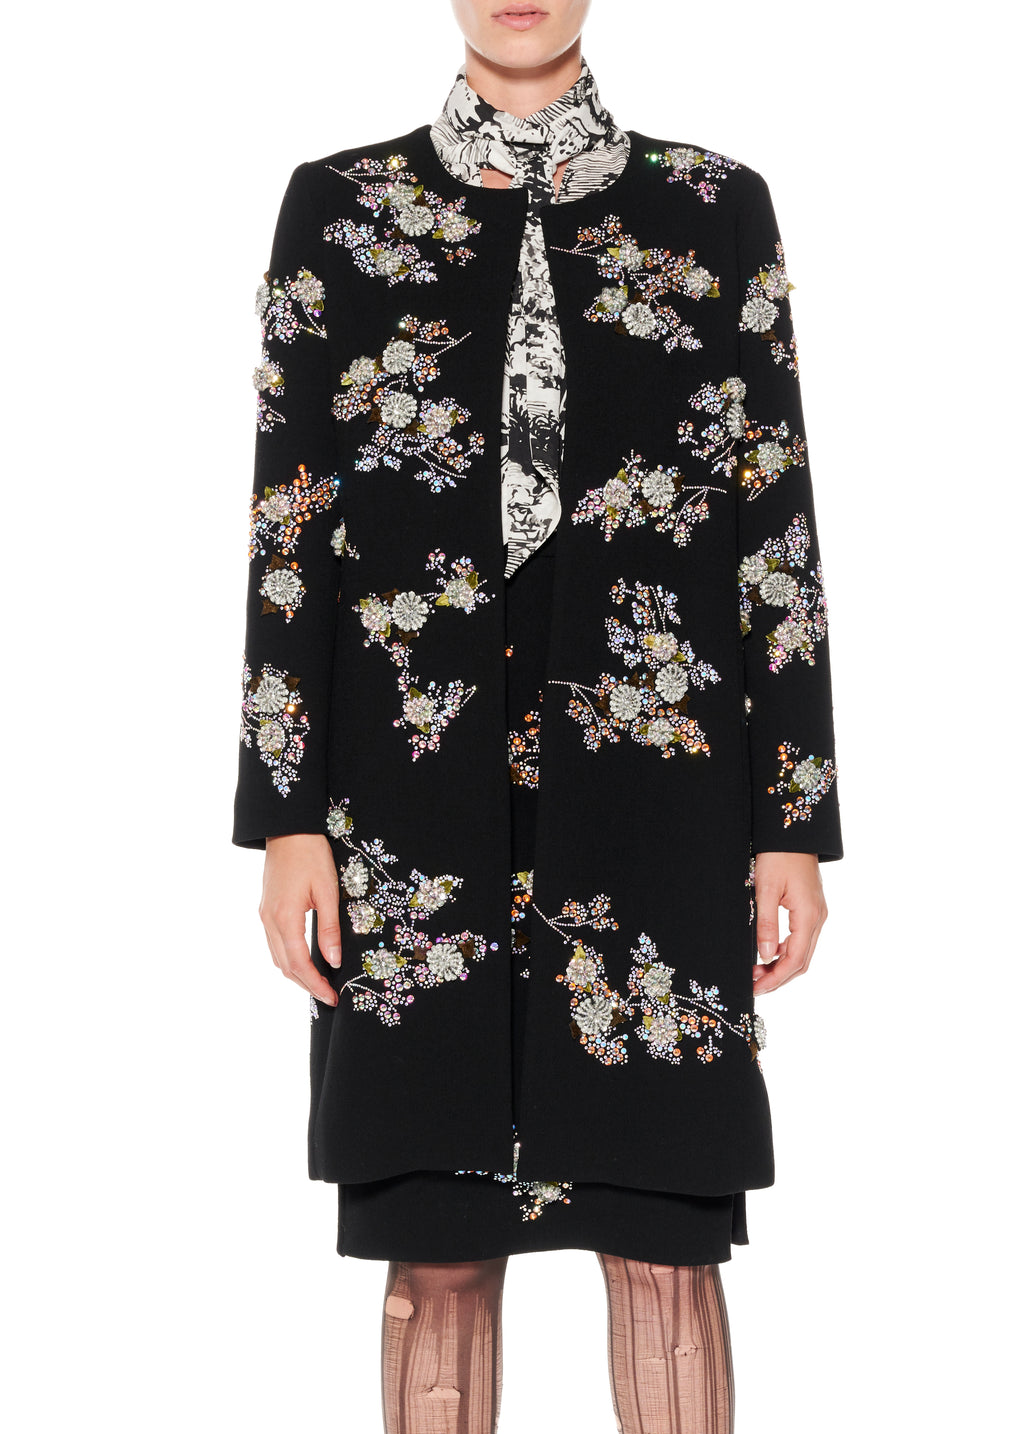 """Twilight Garden' Duster Coat - Women's Jackets & Coats - Libertine"